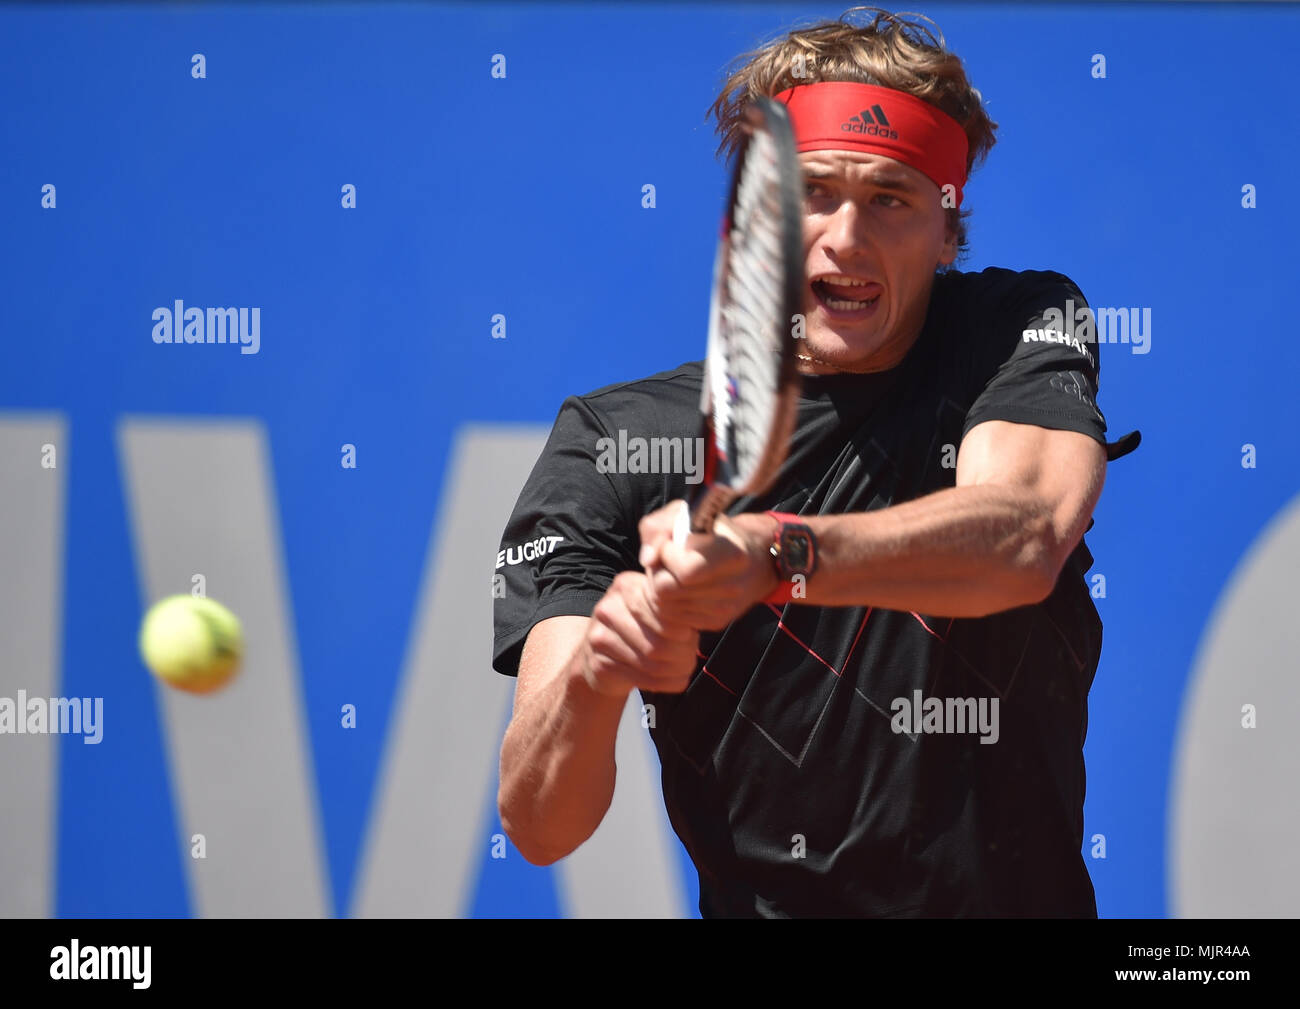 06 May 2018, Germany, Munich: Tennis, ATP-Tour men's singles final. Alexander Zverev of Germany playing against Kohlschreiber of Germany. Photo: Angelika Warmuth/dpa - Stock Image